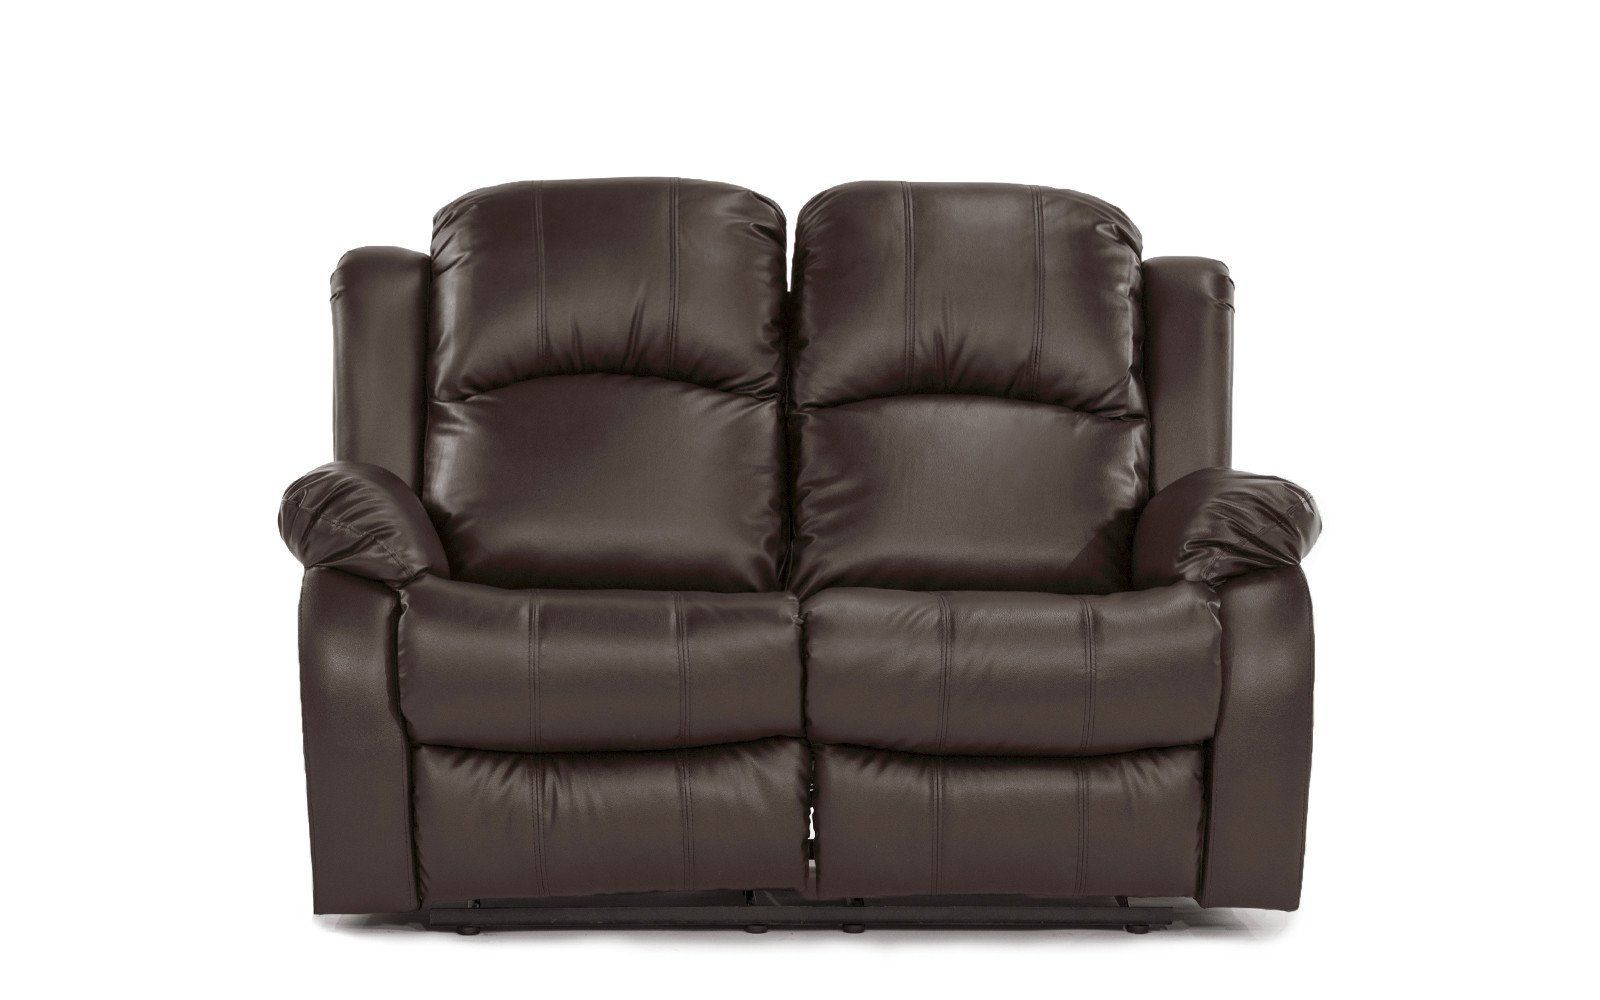 Bob Classic Bonded Leather Recliner Loveseat | Rv recliners ...